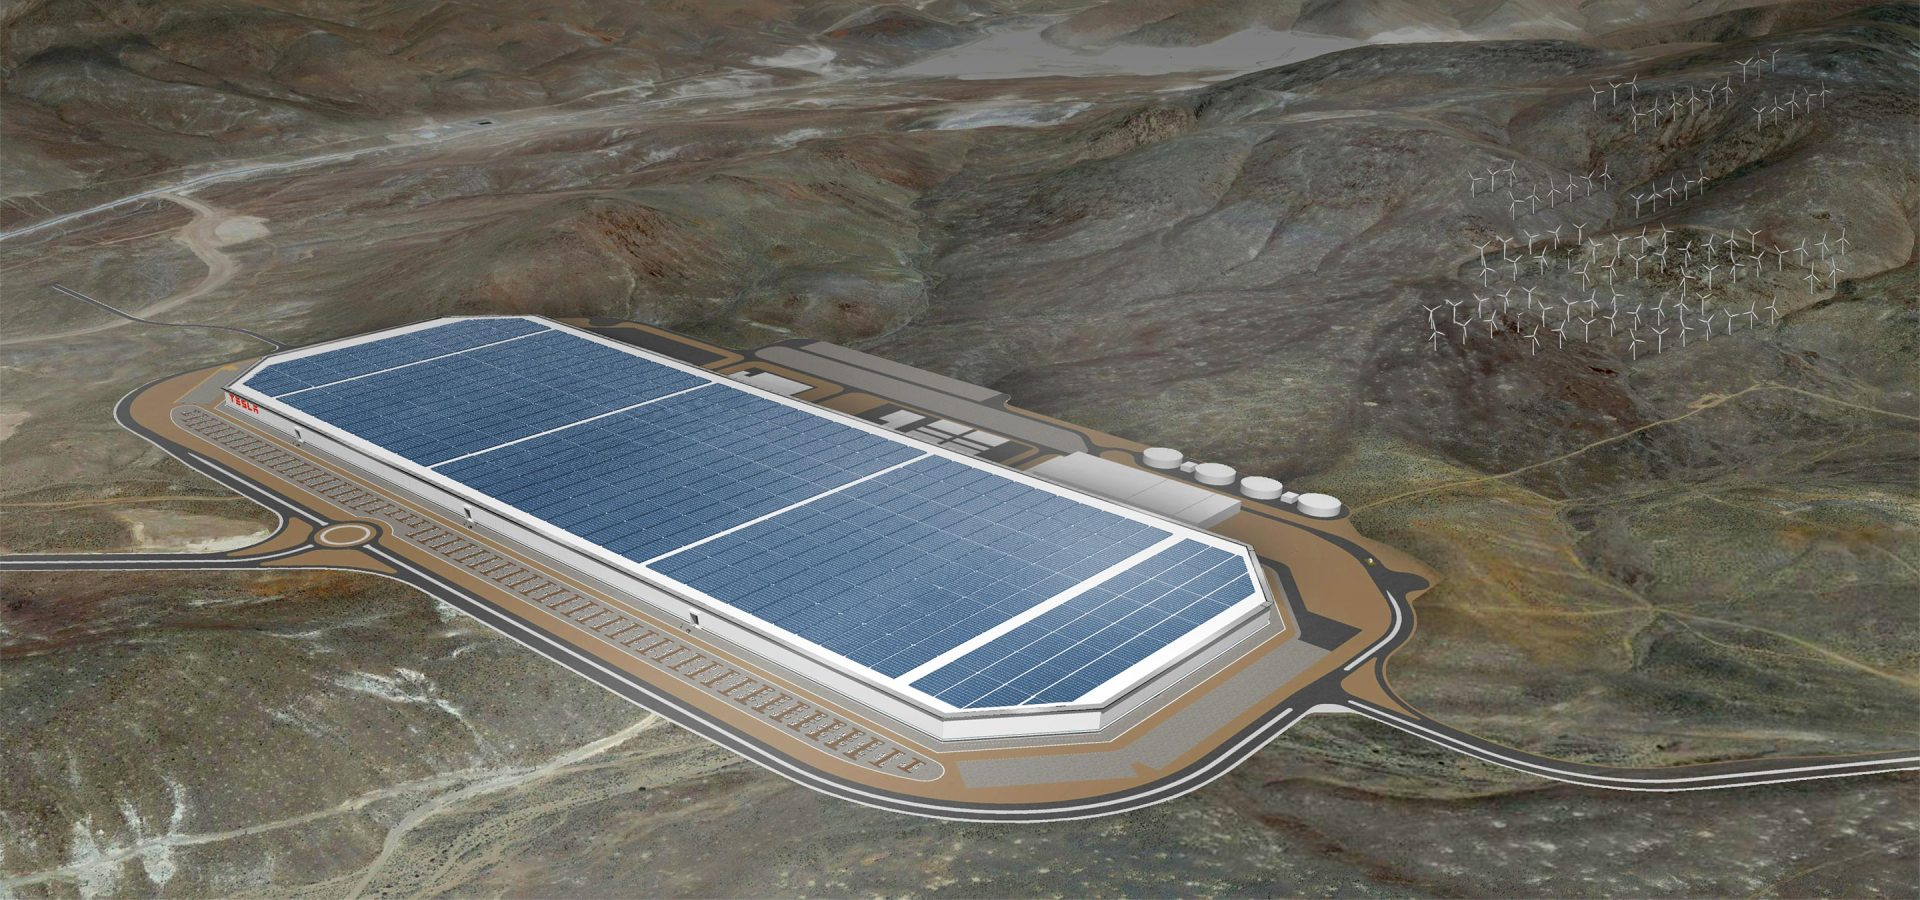 Tesla 35 GWh Gigafactory is planned to be in operation by 2020.